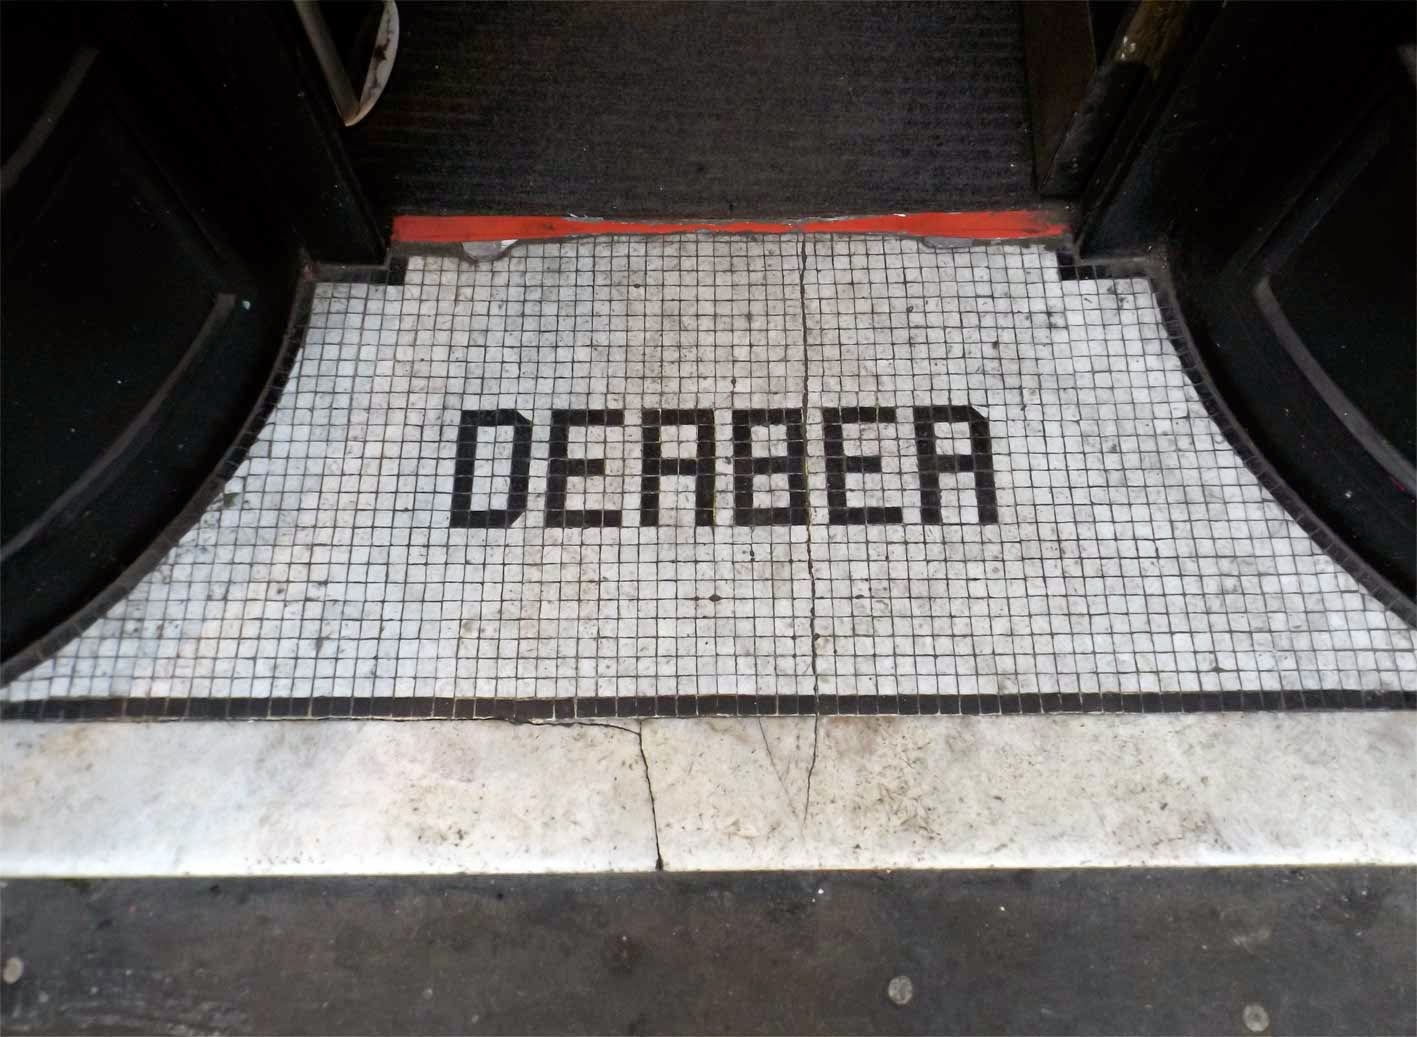 derber show shop mosaic wardour street london